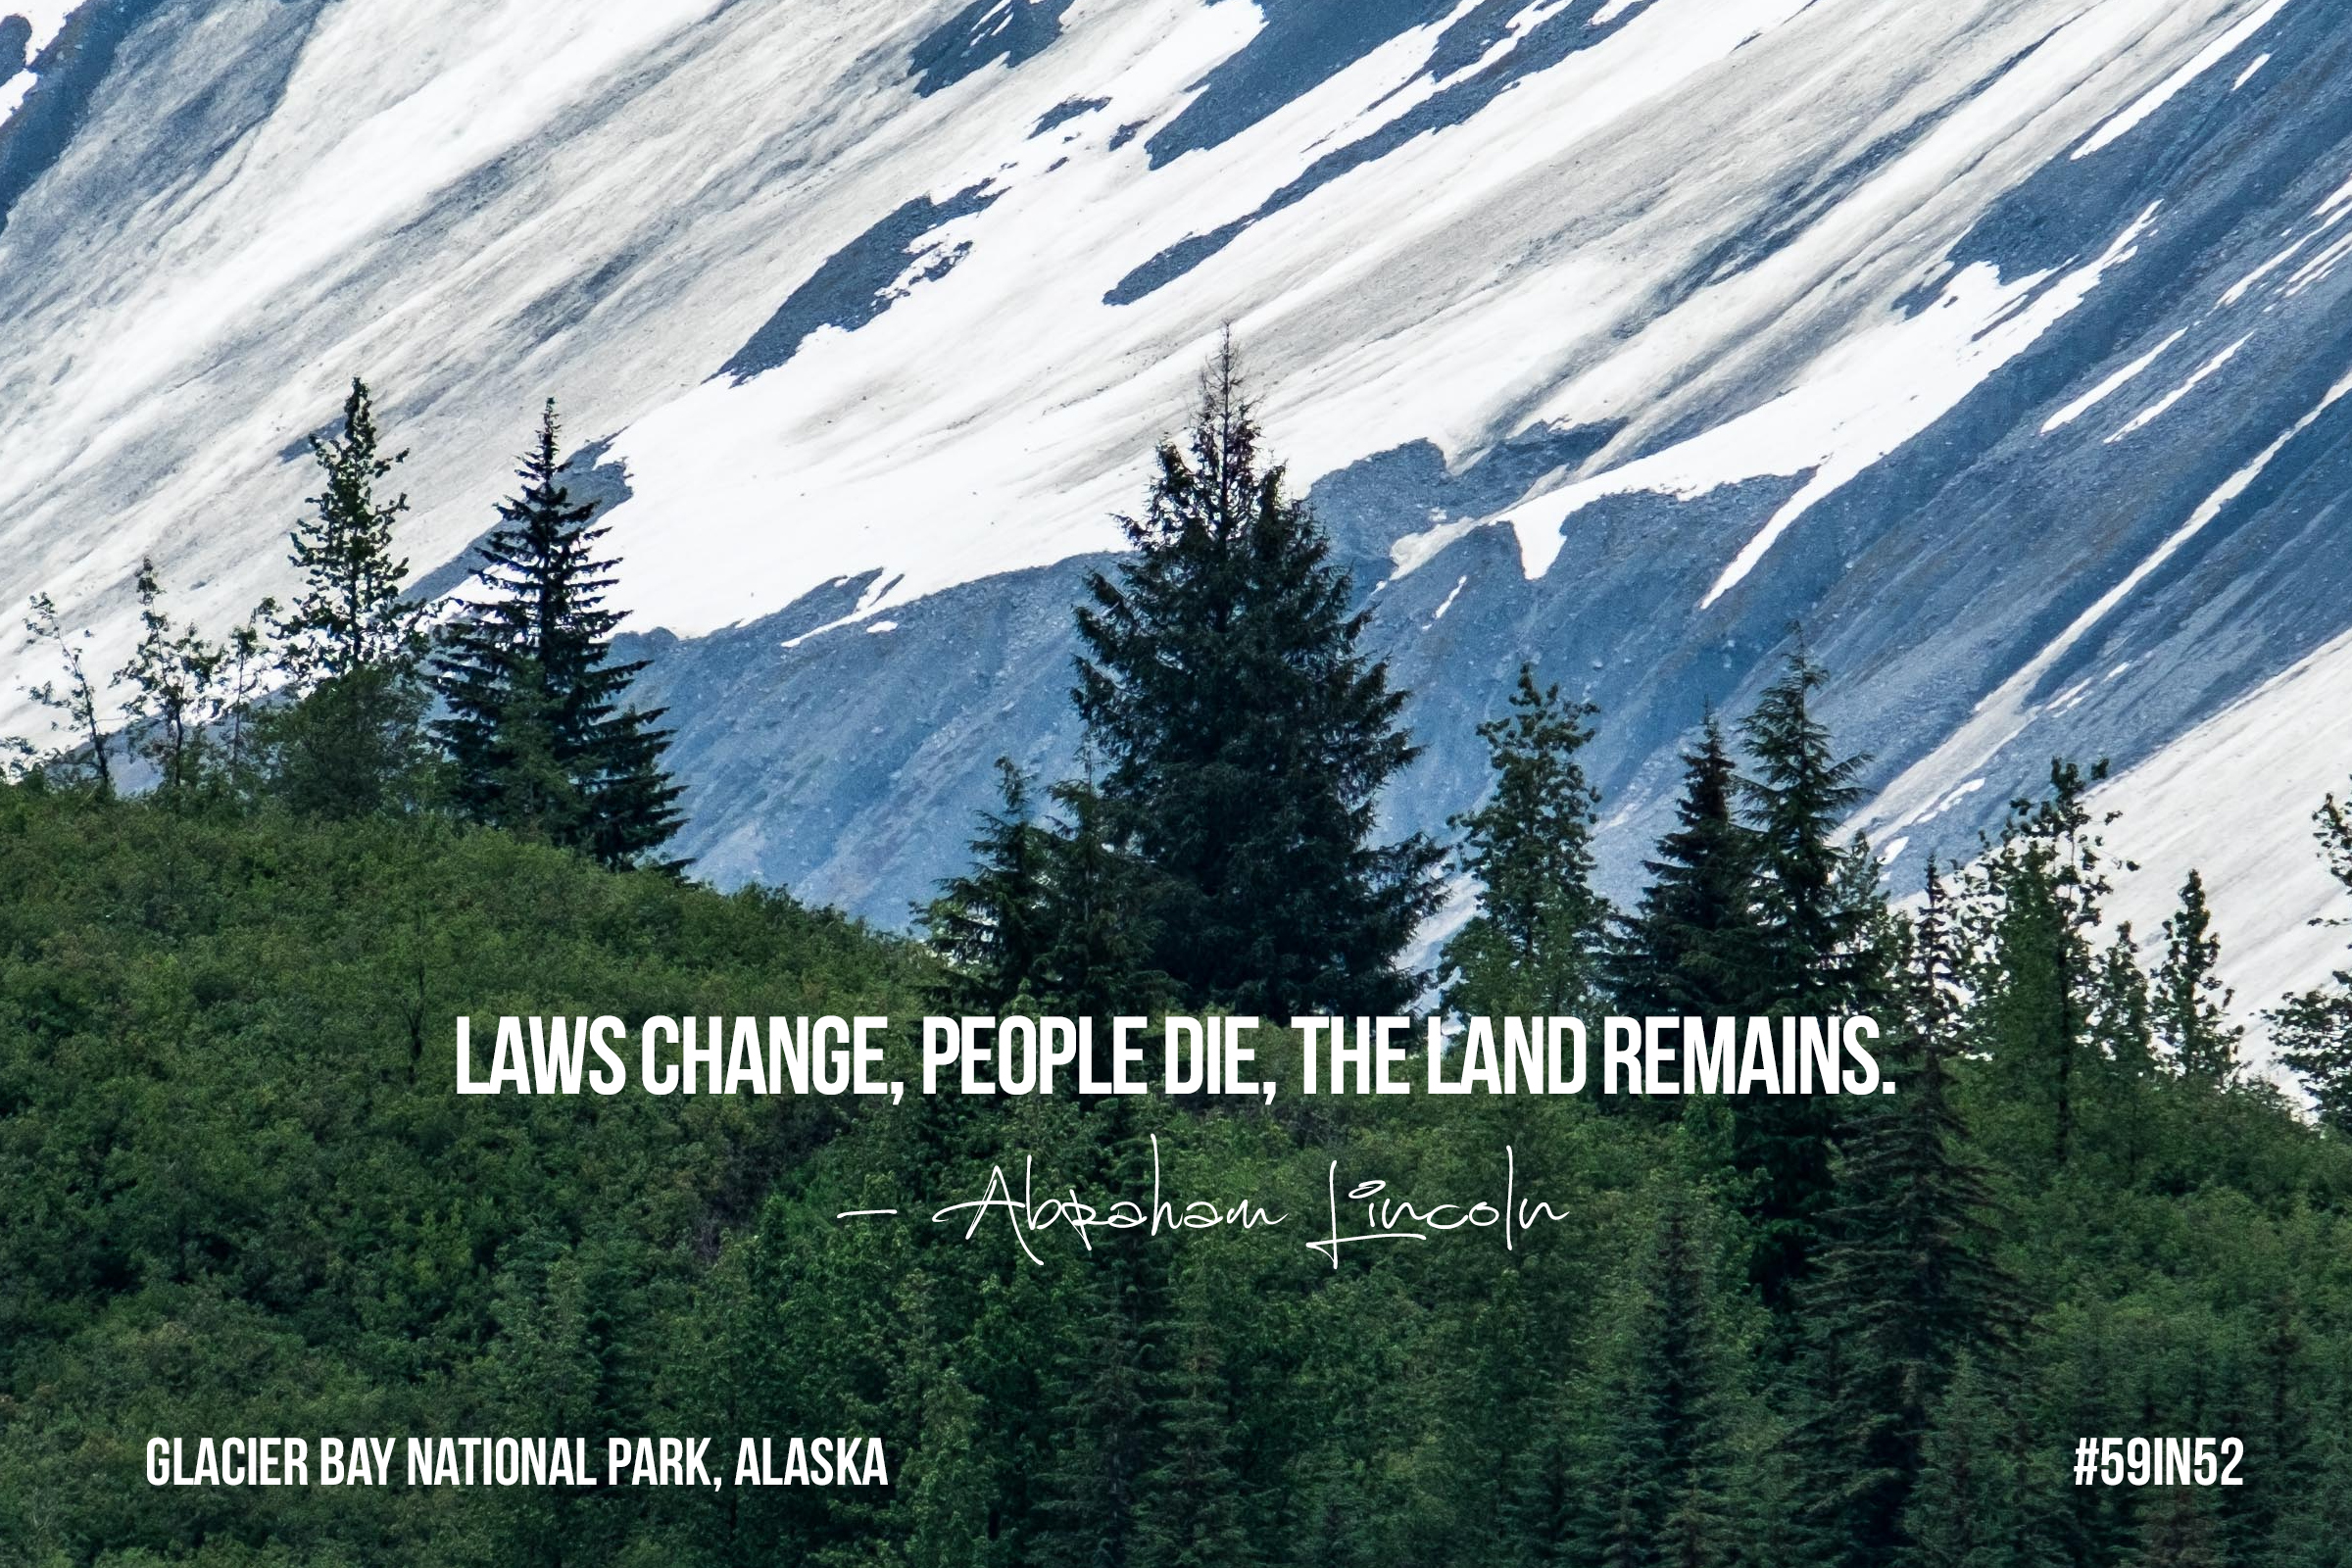 """""""Laws change, people die, the land remains."""" - Abraham Lincoln"""